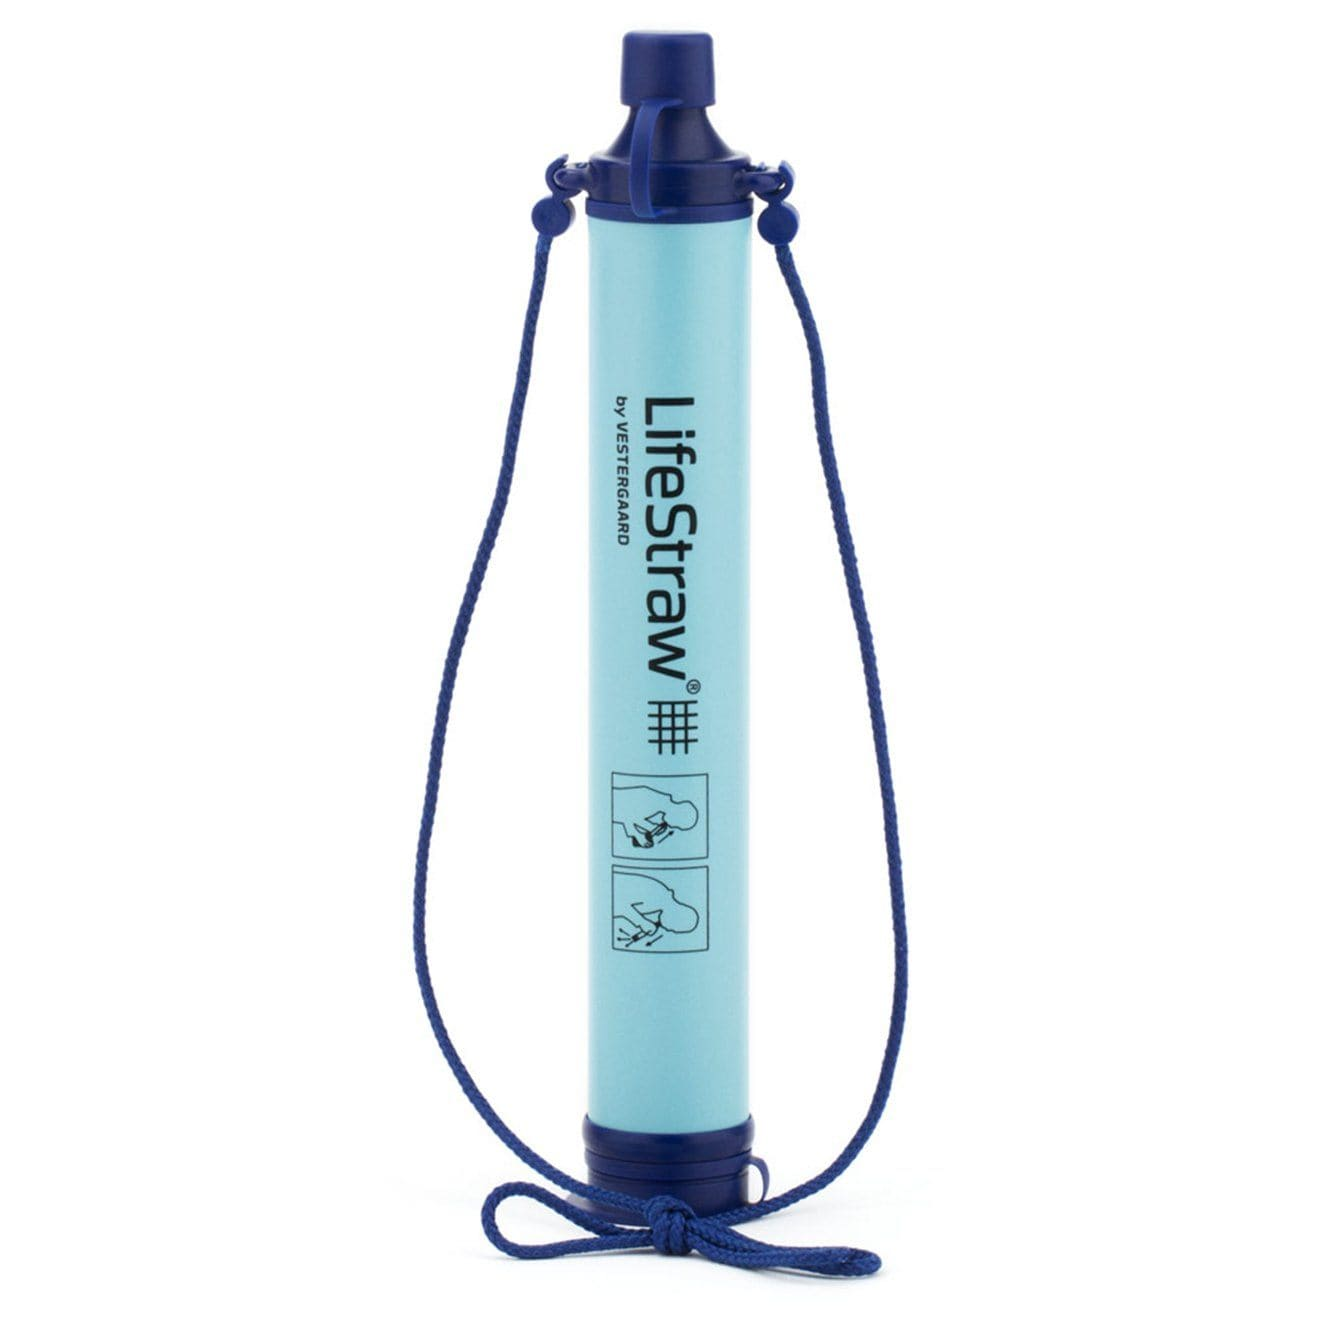 LifeStraw Personal Survival Water Filter and Emergency Water Filter